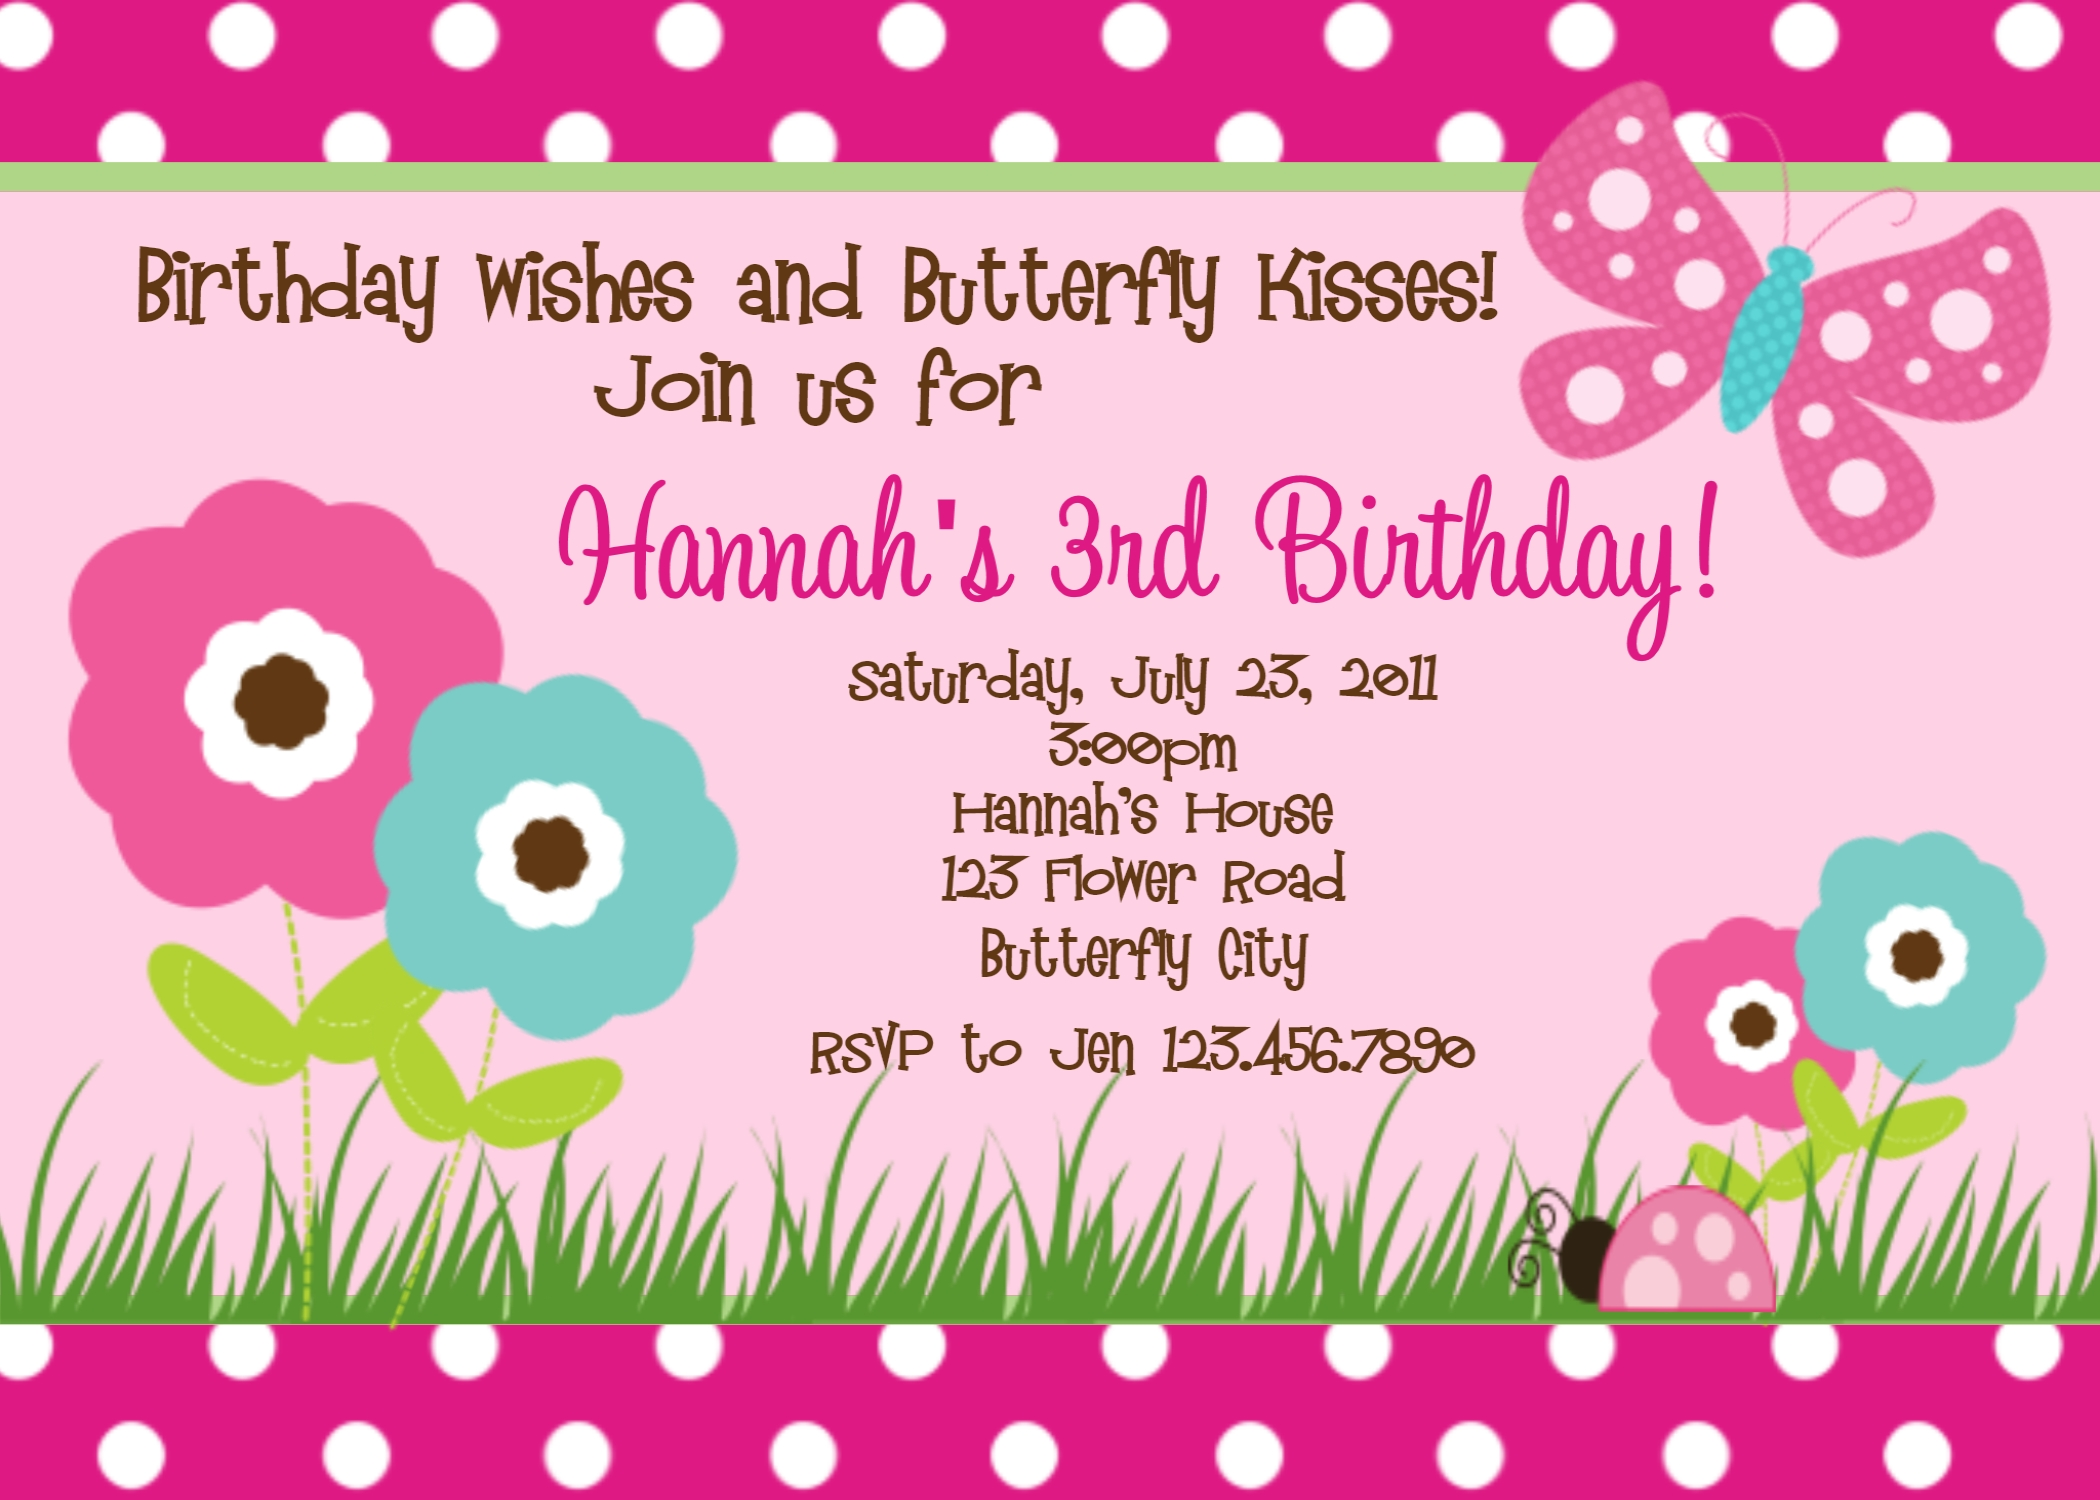 Printable Birthday Invitations Butterfly Party Little Girl – Butterfly Invitations Birthday